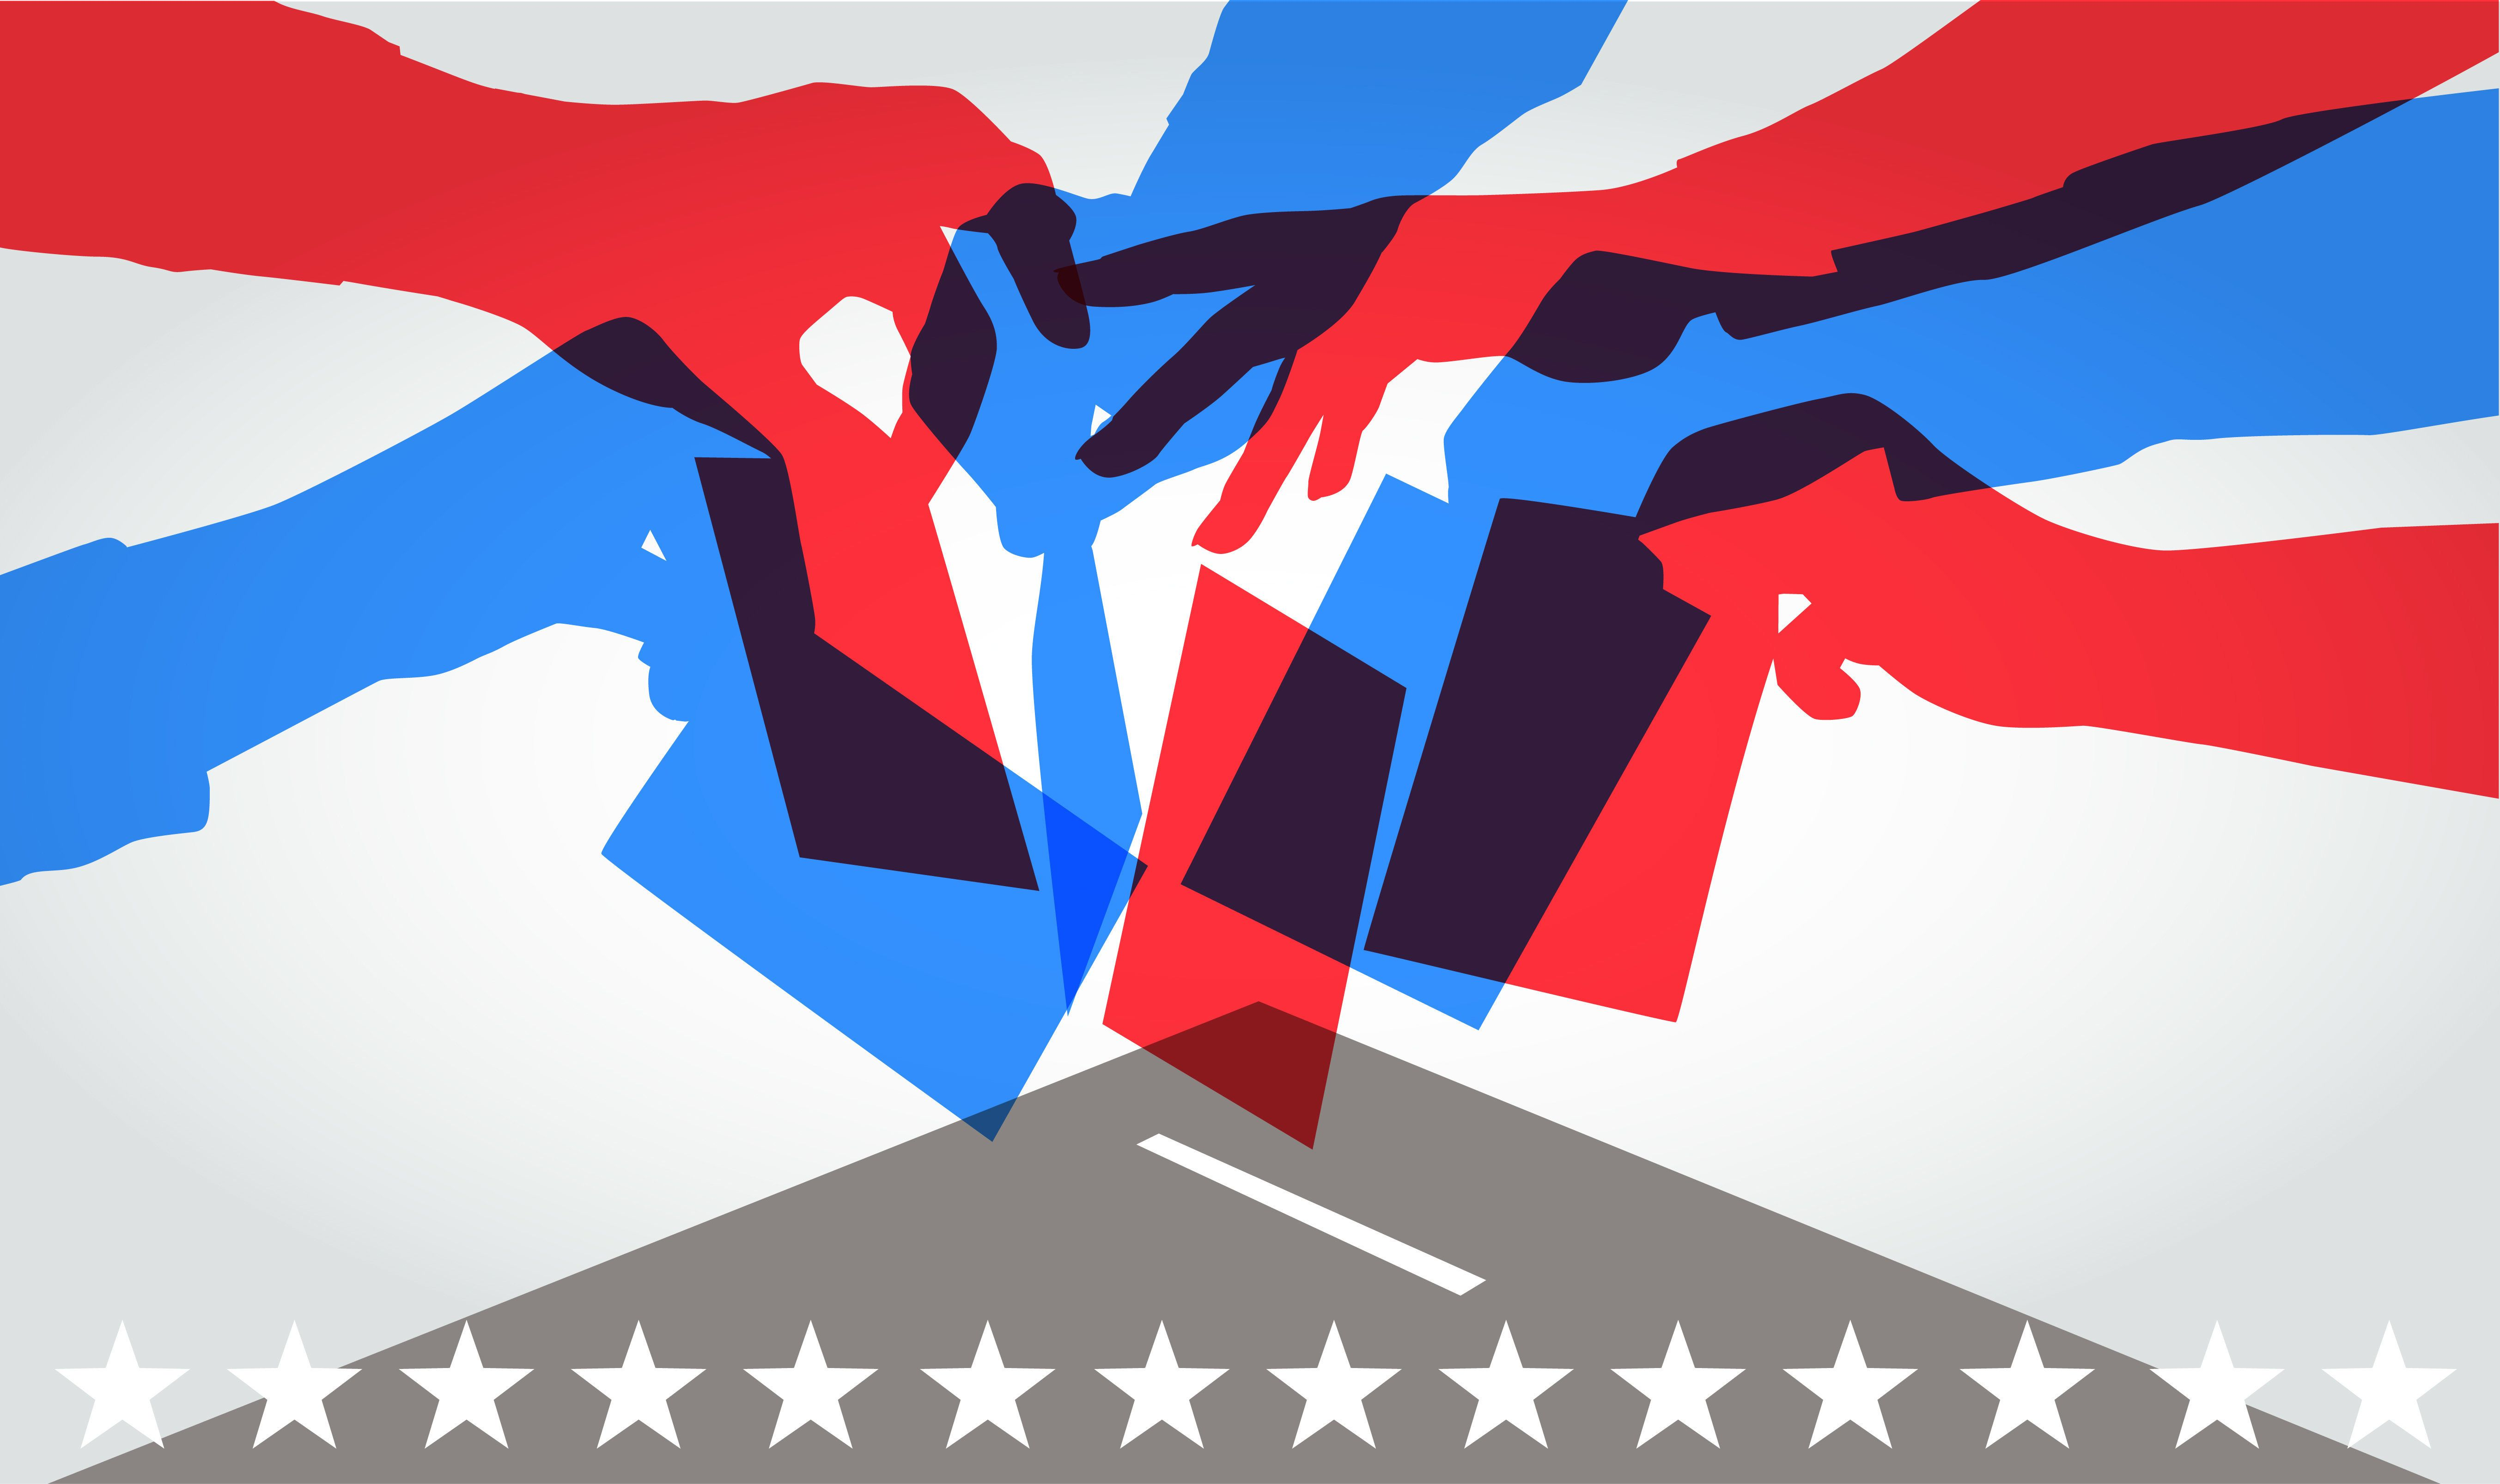 Democrats now have unified control of 14 states and the District of Columbia.